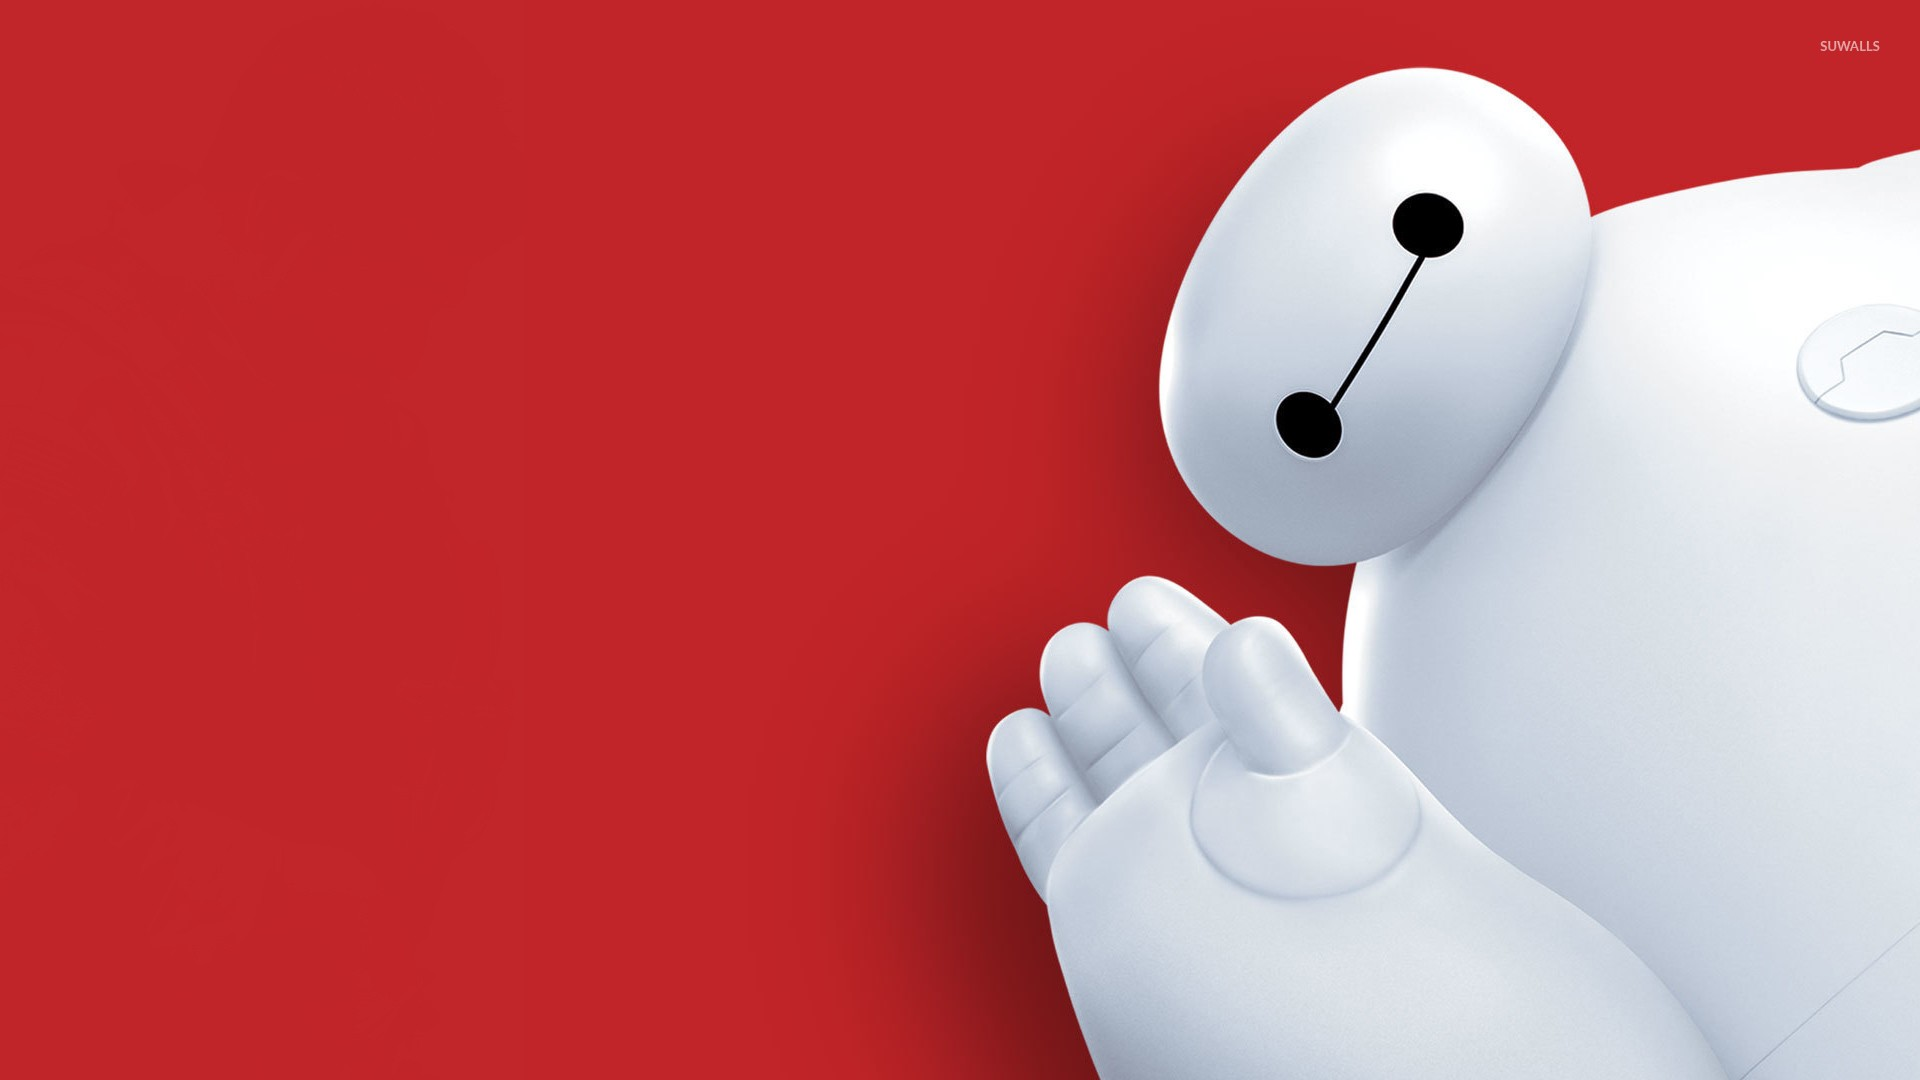 Baymax Wallpaper Download Free Amazing Full Hd Wallpapers For Desktop And Mobile Devices In